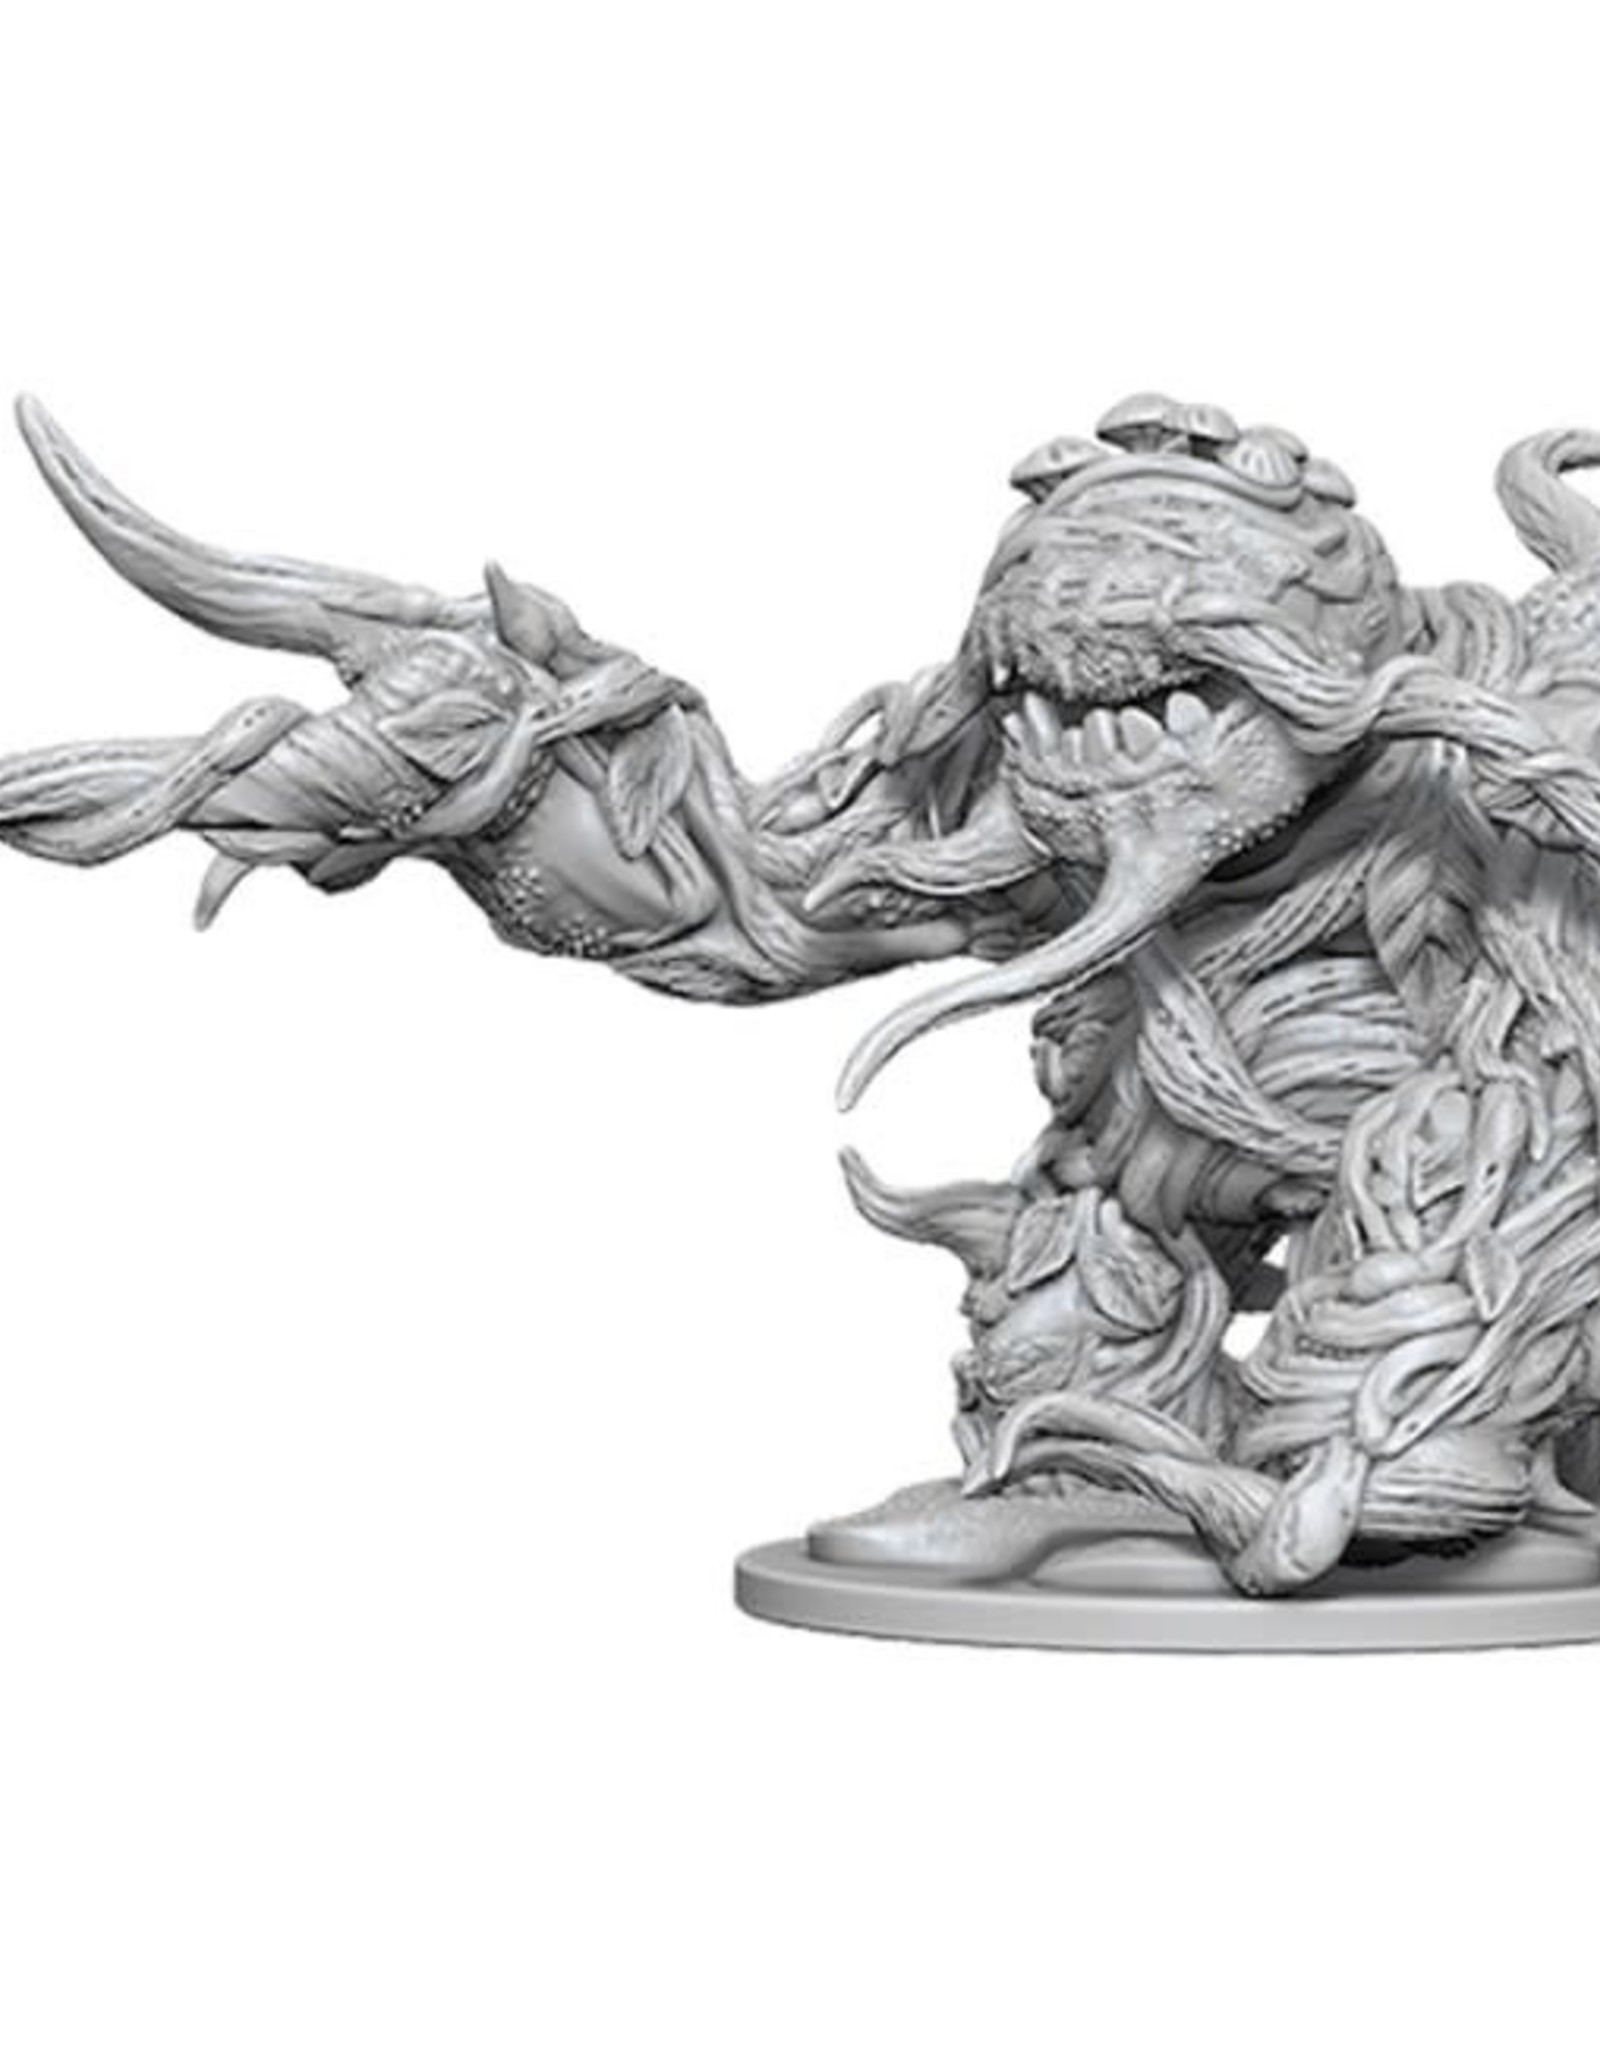 WizKids Dungeons & Dragons Nolzur's Marvelous Miniatures: Wave 6 Shambling Mound